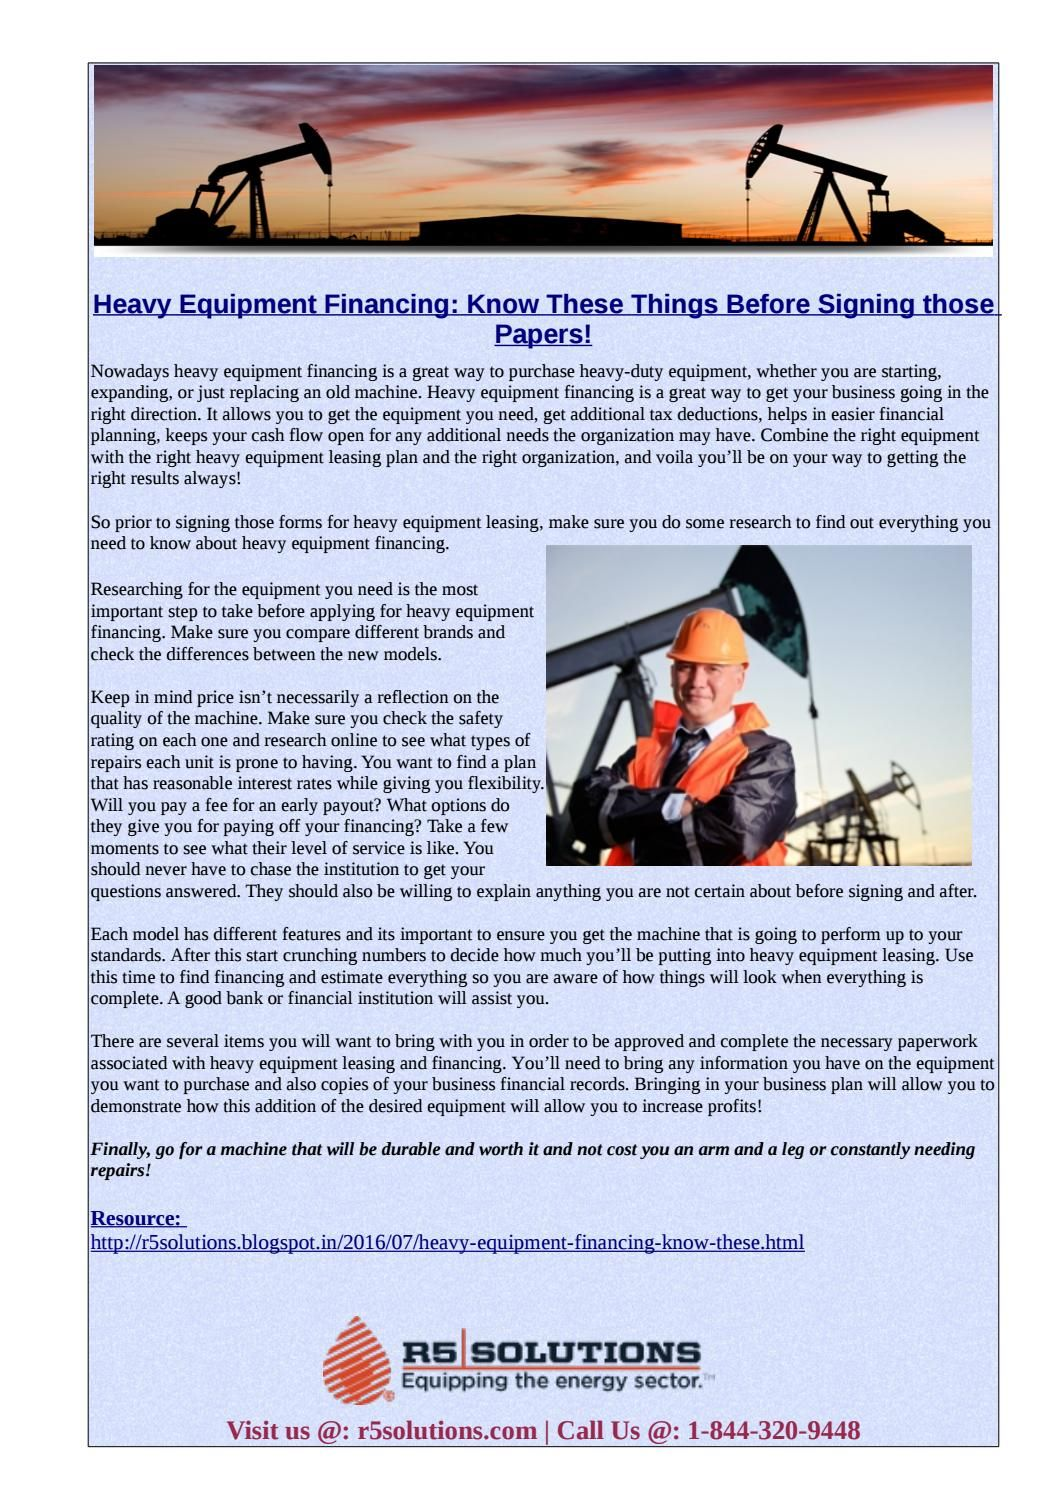 Heavy Equipment Financing Know These Things Before Signing Those Papers Finance Heavy Equipment Oil And Gas